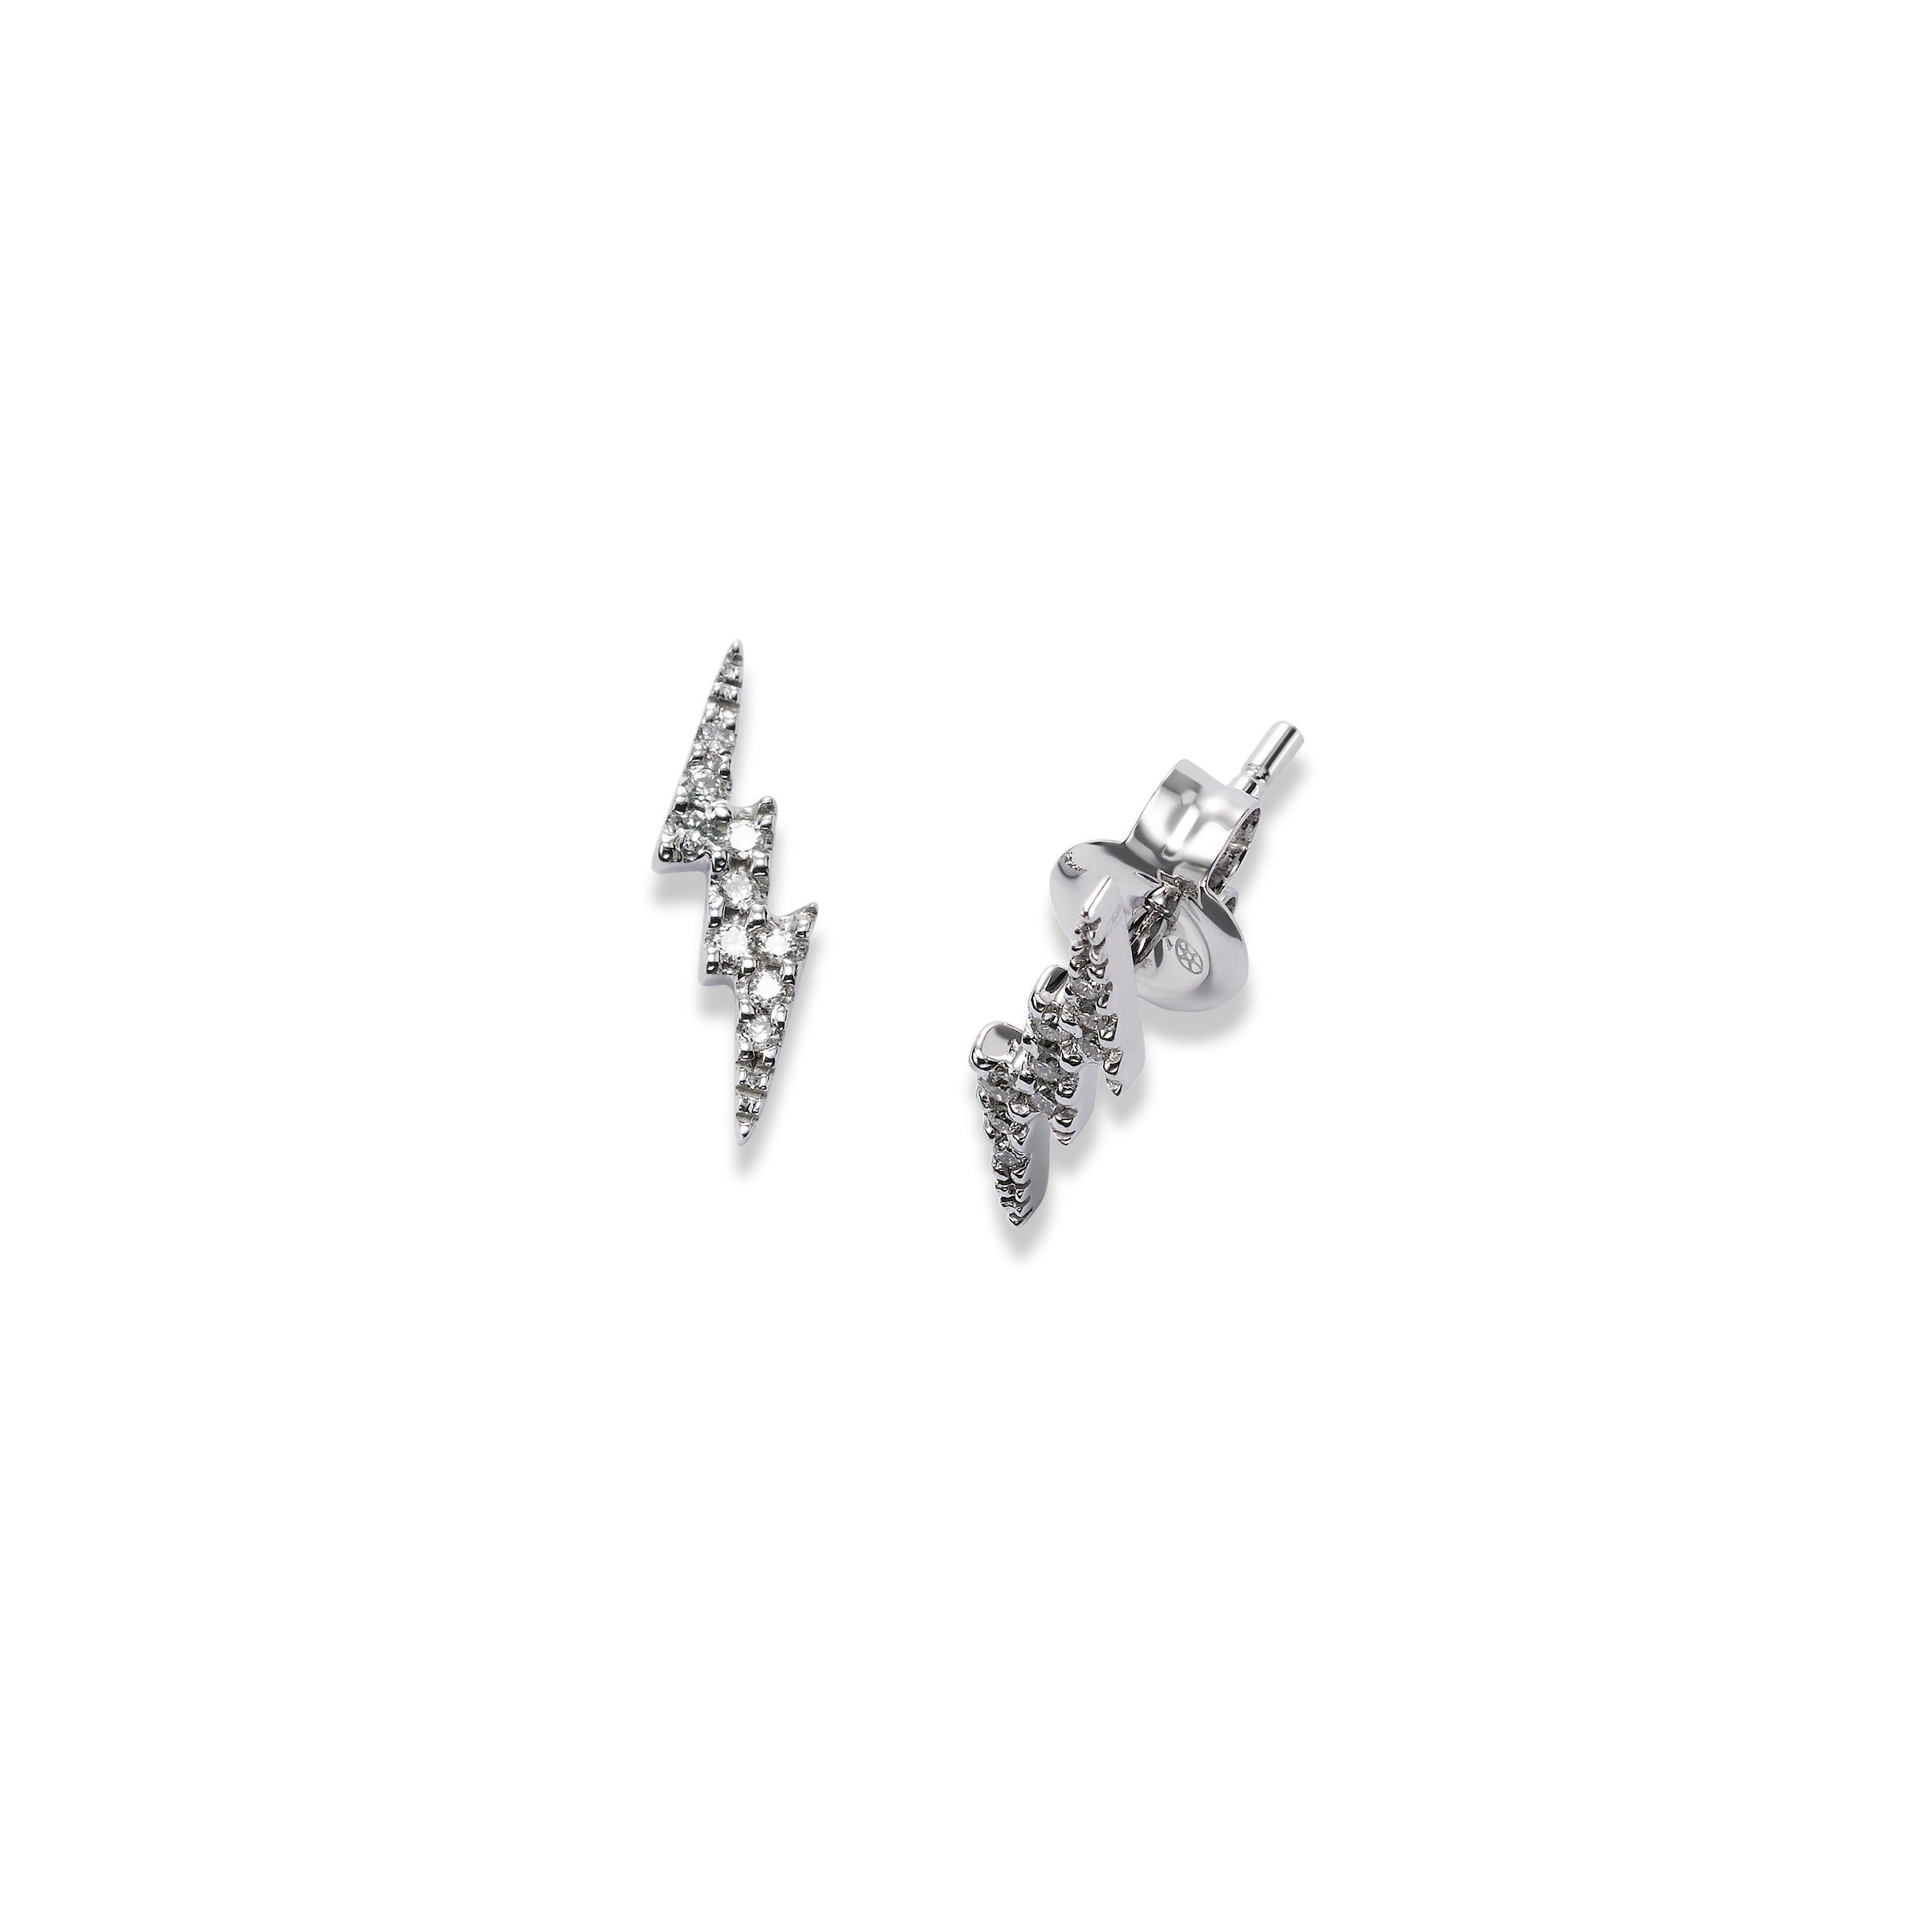 Small Pavé Diamond Lightning Earrings, 14K White Gold